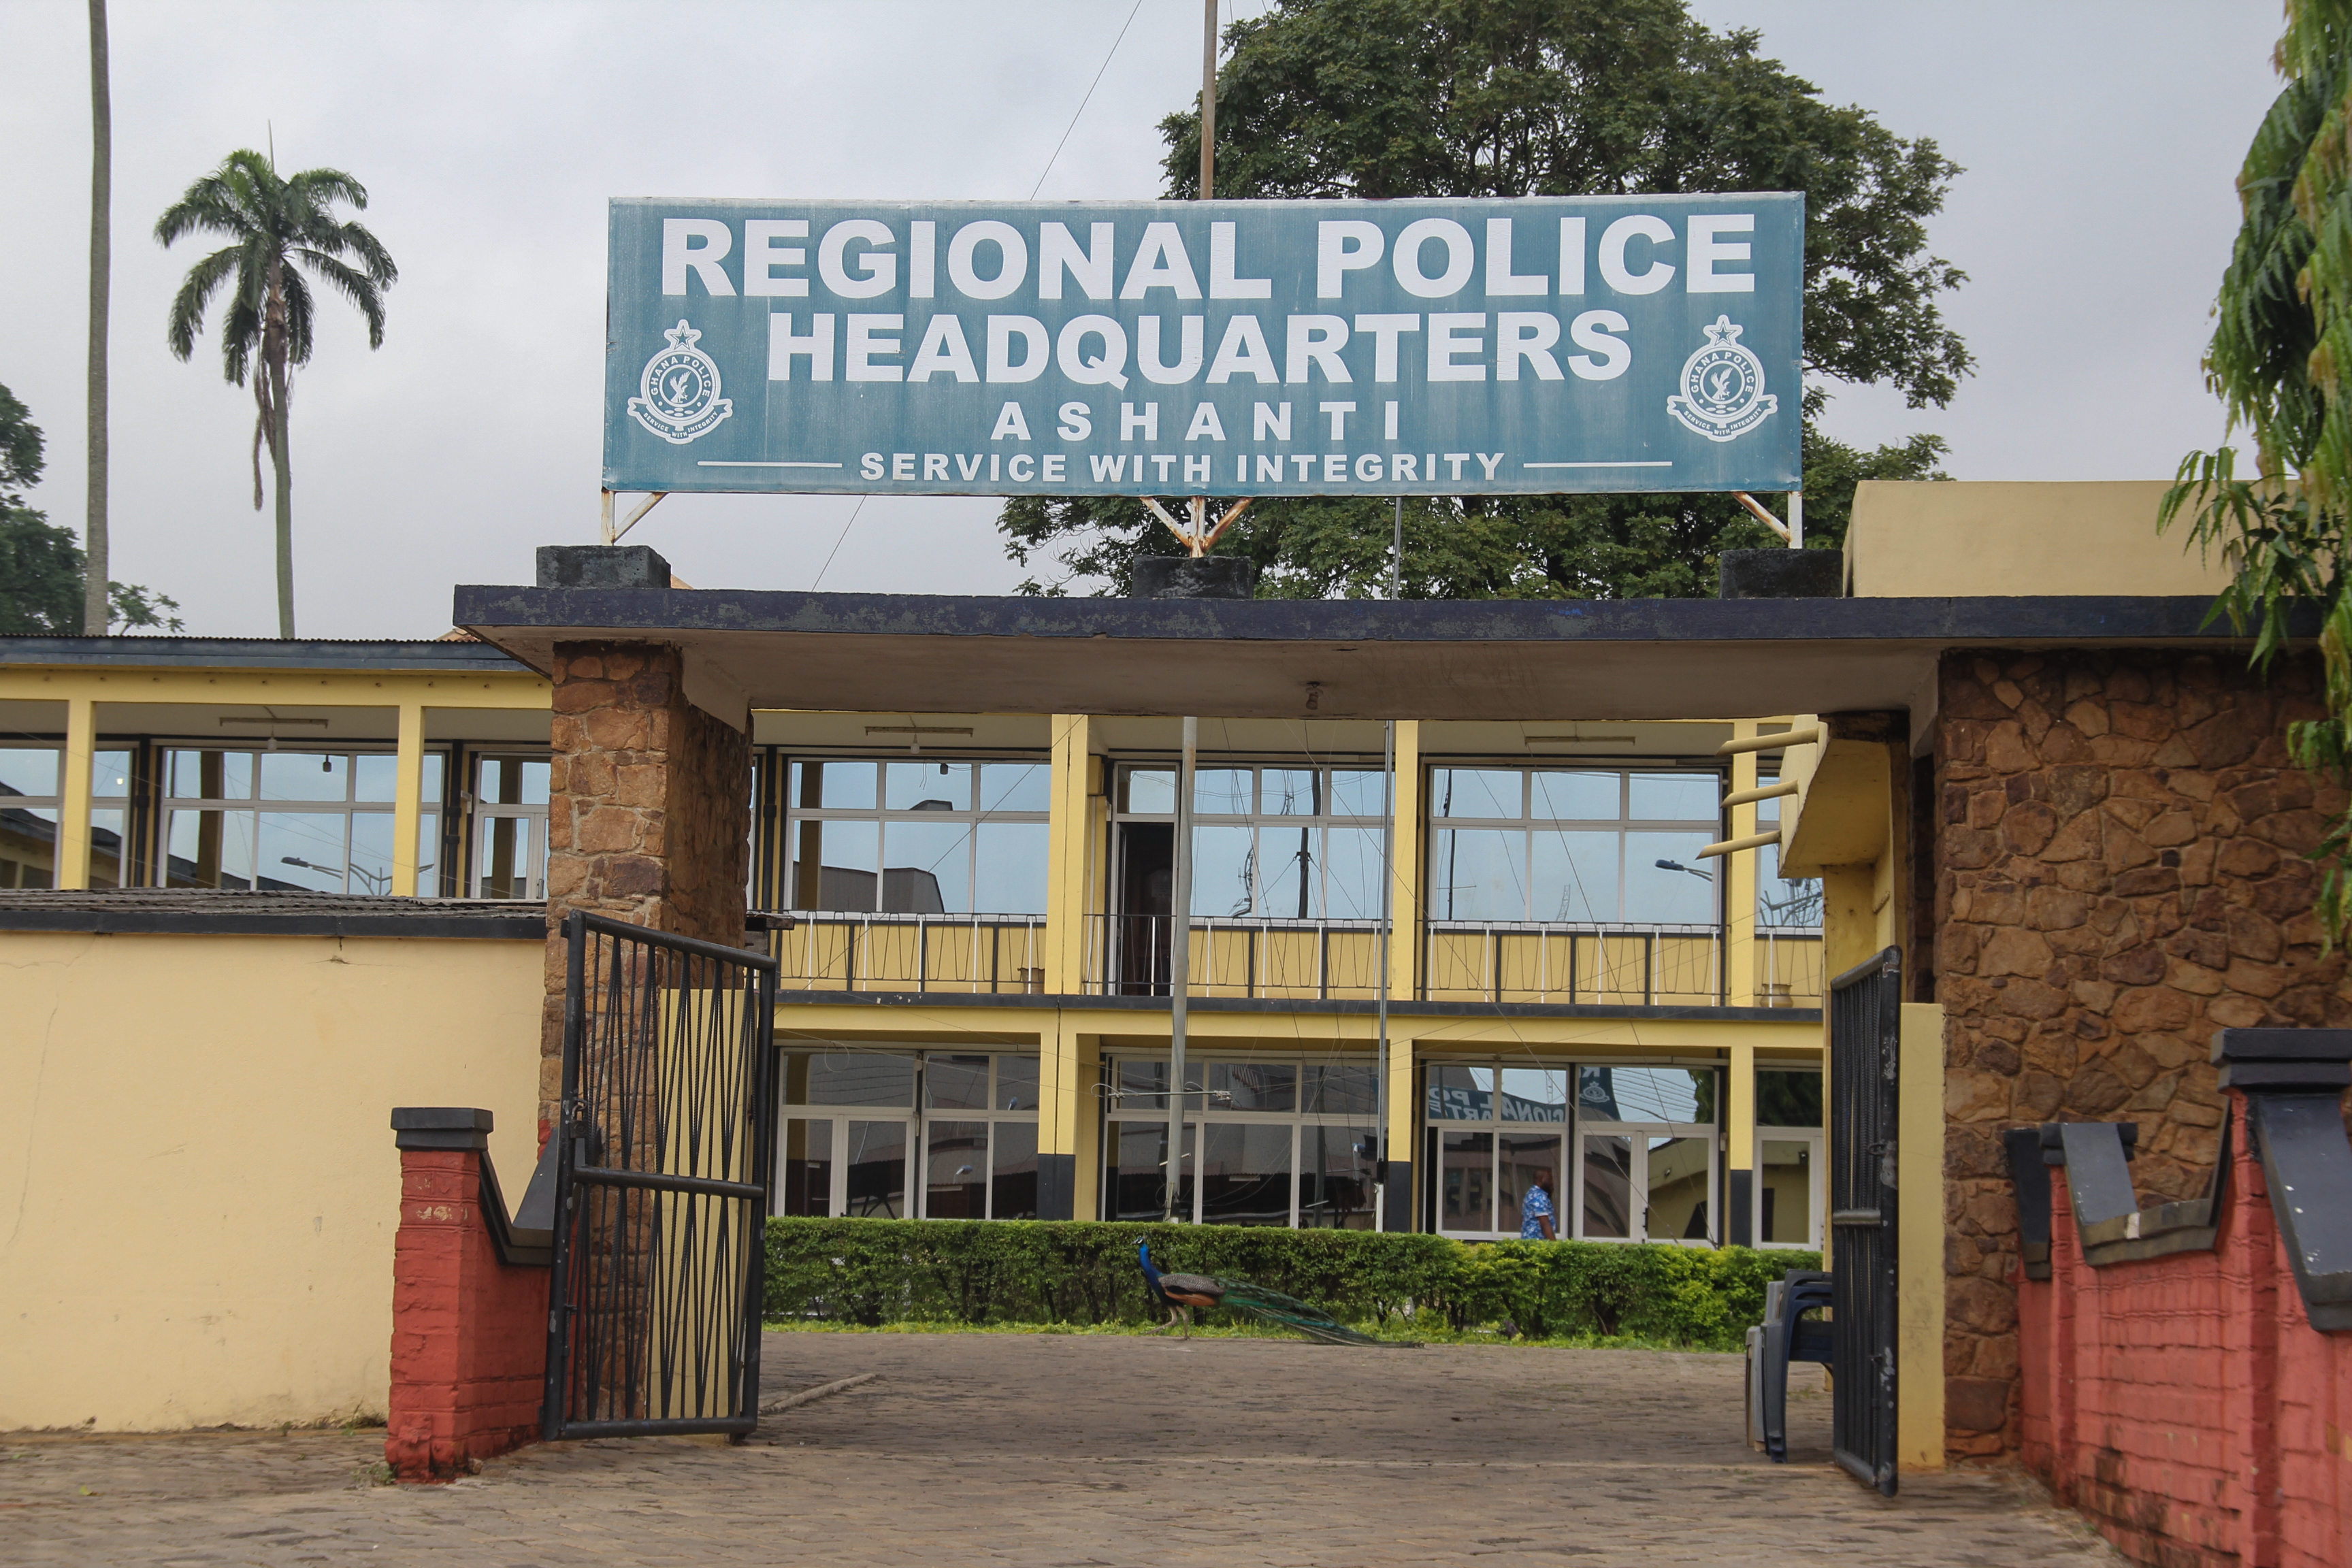 """The Ashanti Regional Police Headquarters in Kumasi is pictured on June 7, 2019. - The Canadians, charity volunteers aged 19 and 20, were taken on the evening of June 4, in Kumasi, Ghana's second city, some 200 kilometres (125 miles) northwest of the capital Accra, David Eklu, the assistant commissioner of police said in a statement. """"Police Command is investigating a complaint of kidnapping at Ahodwo, Kumasi Royal Golf Club, at 8:25 pm on 4 June, 2019, where two women of Canadian nationality were kidnapped,"""